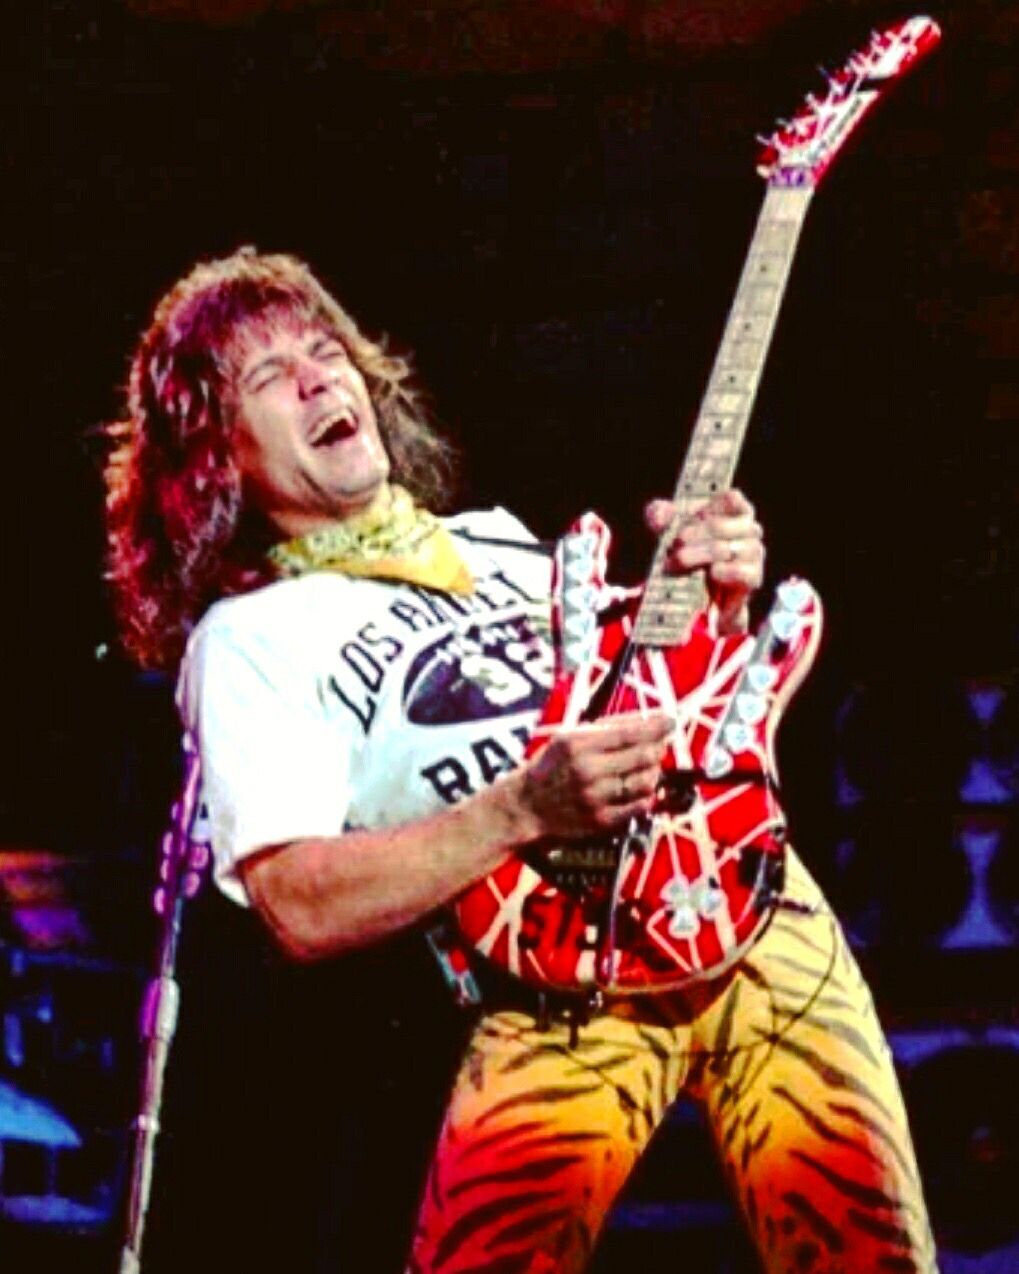 Eddie Van Halen 1984 Nfl Football Los Angeles Raiders Leopard Van Halen Eddie Van Halen Greatest Rock Bands